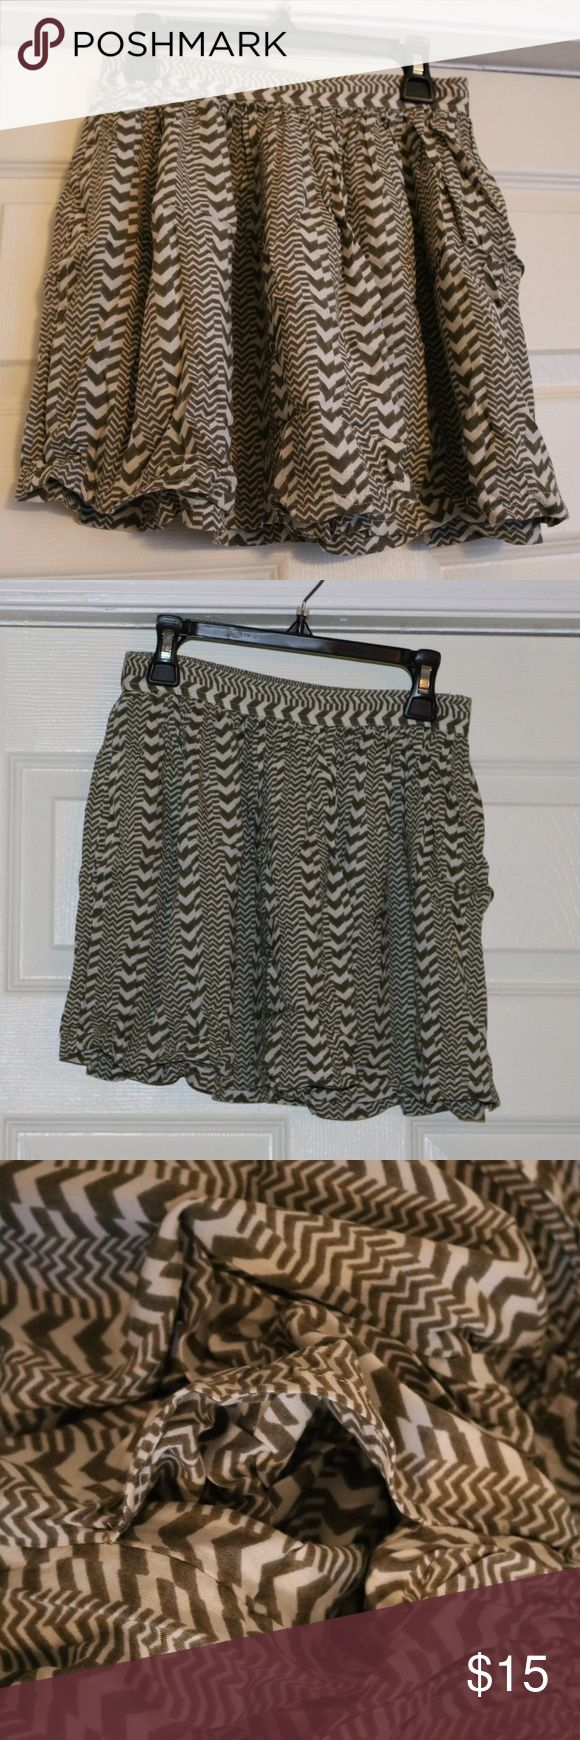 "American Eagle Olive Green/Cream Miniskirt Tags removed, NEVER WORN.  Perfect for petite girls!  Bought this skirt to wear over olive green tights with little black ankle booties.  However, I never wore the skirt before I gained weight.  Perfect for summer or in between seasons.  Paired with a leather jacket, this skirt can go from innocent to edgy. It is approximately 15"", measured from the top of the waistband to the bottom.  12.5"" waist.  I am 5' 7.5"" and the skirt is much too short on…"